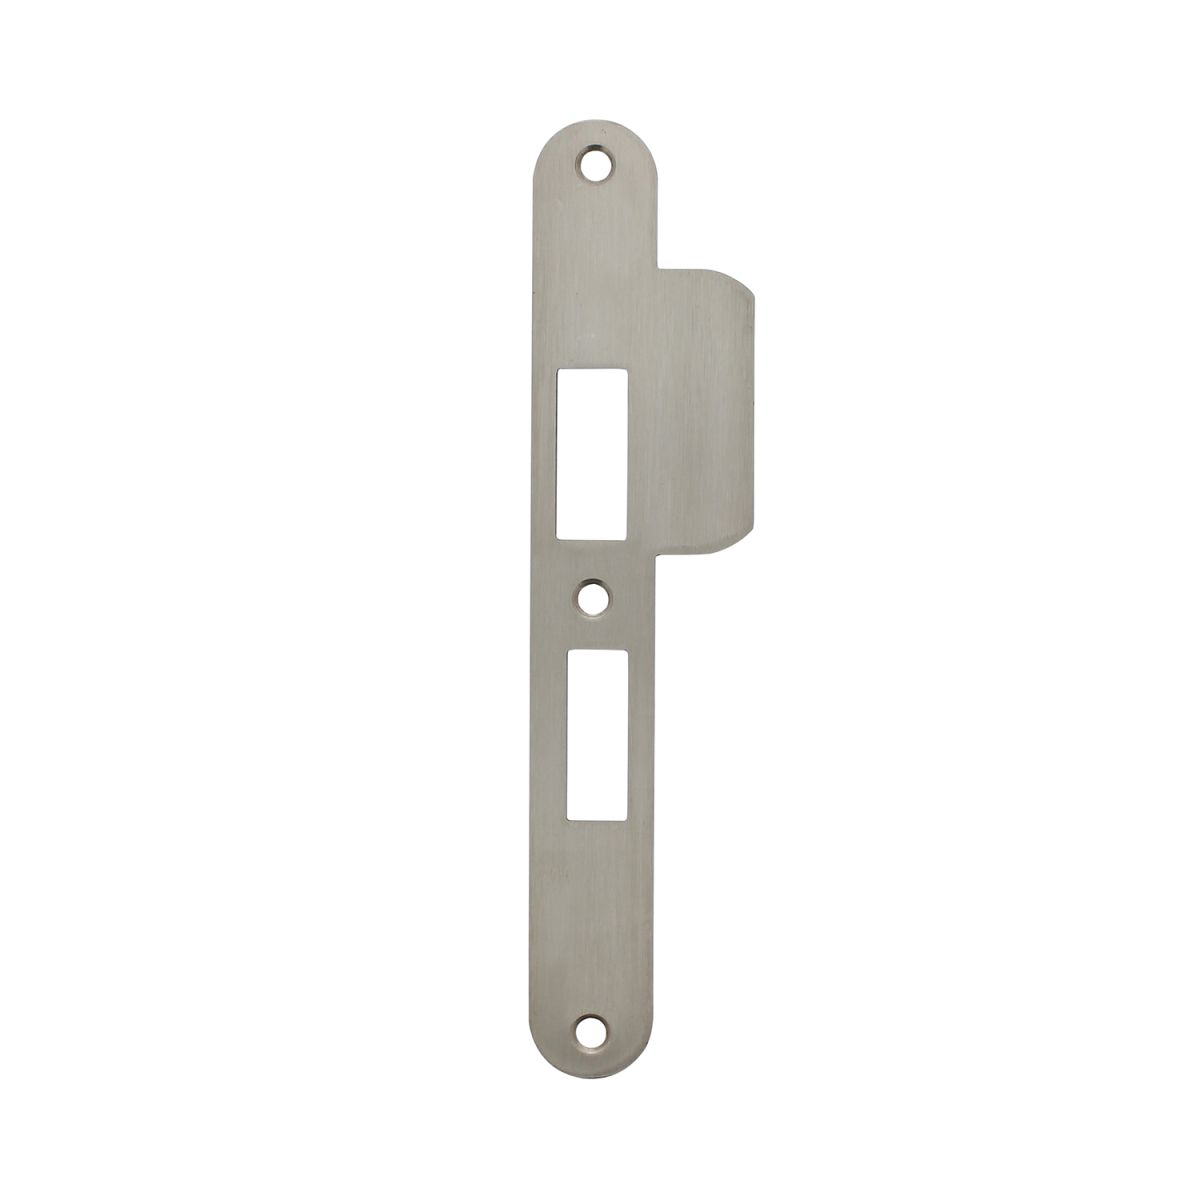 strike plate vhc lock 55mm right stainless steel